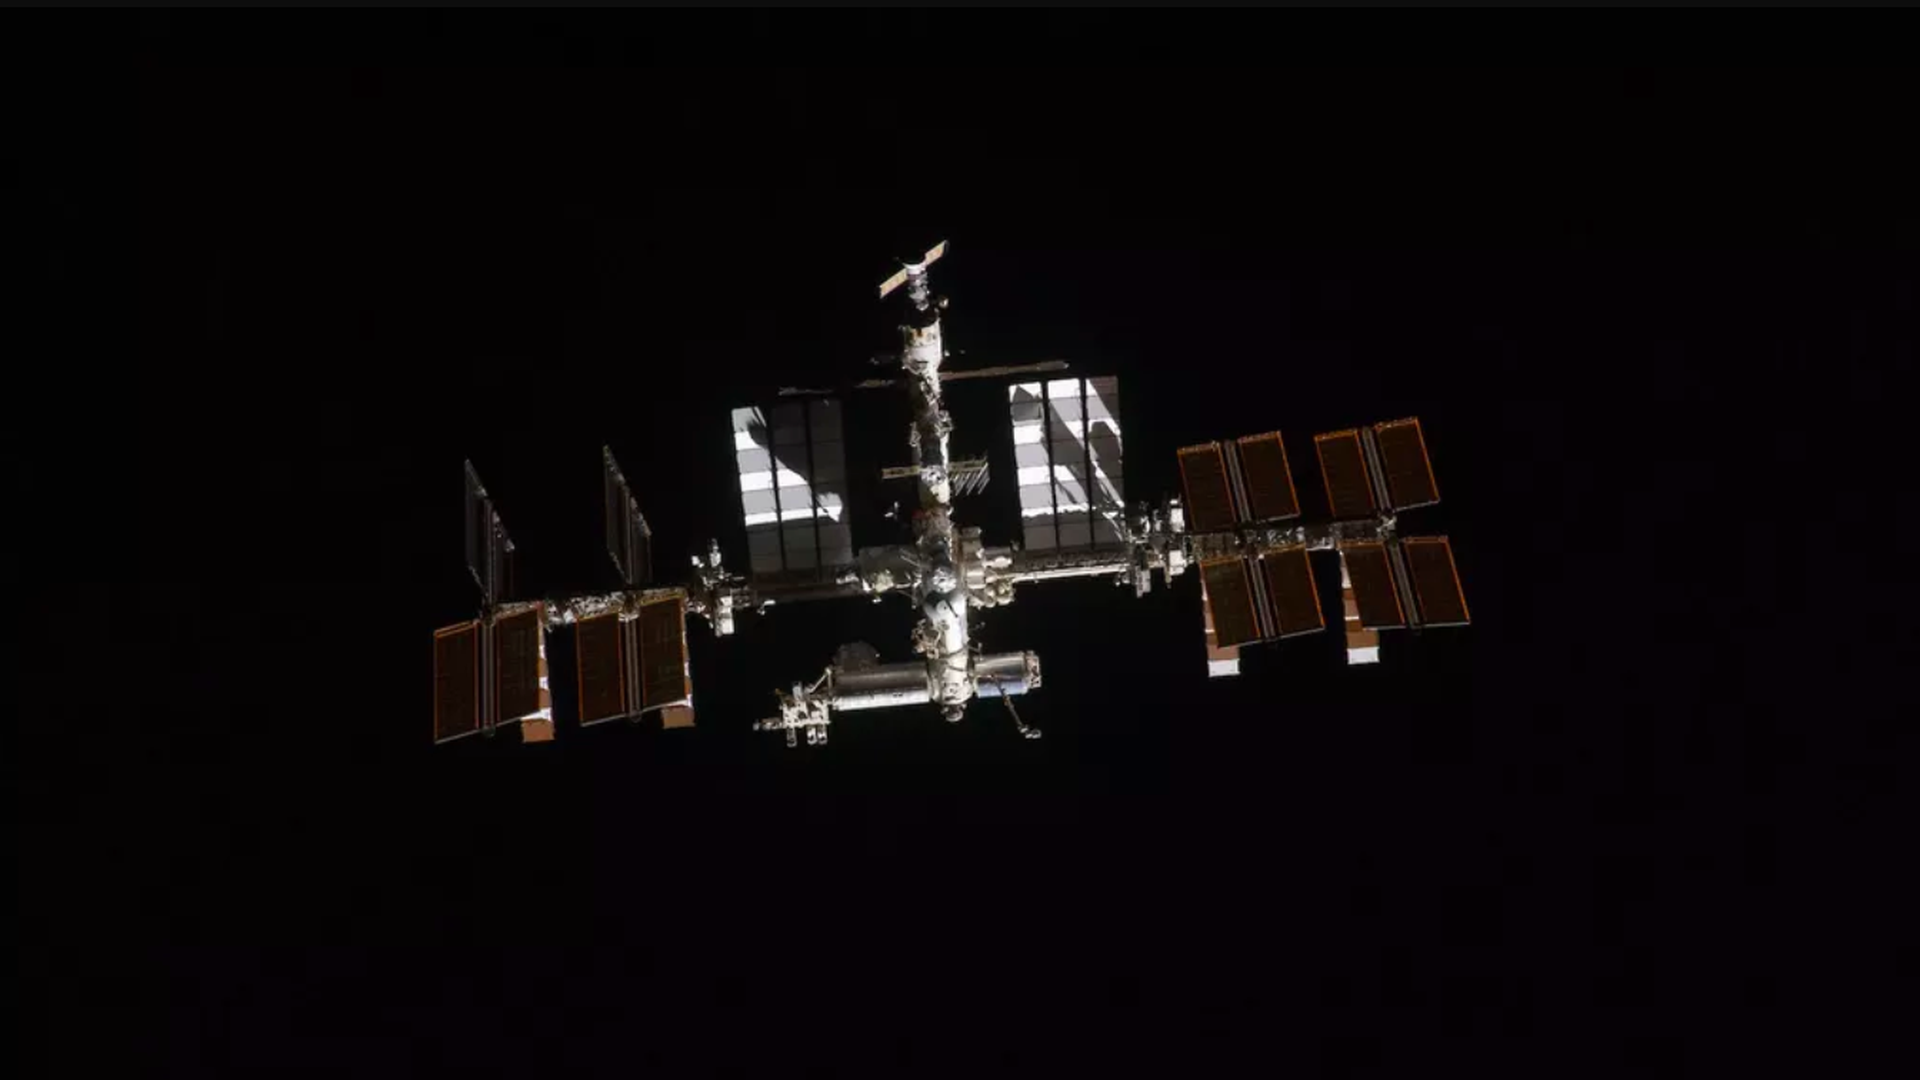 This image shows the International Space Station surrounded by space.